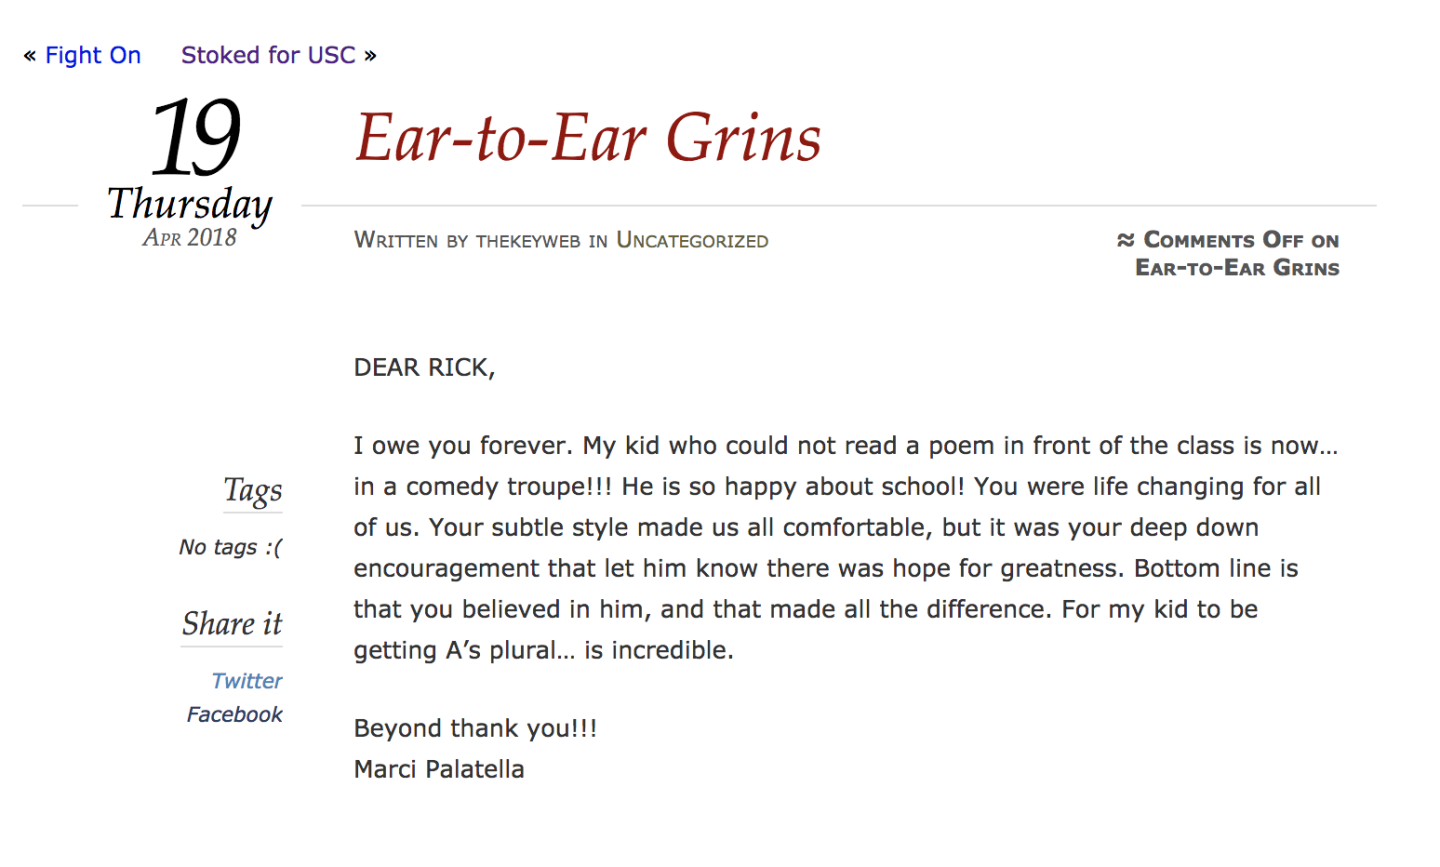 """""""Ear-to-Ear Grin"""". Marci Palatella'stestimonial on The Key Worldwide's website. Palatella was indicted in the college admissions scandal on March 12th, 2019."""